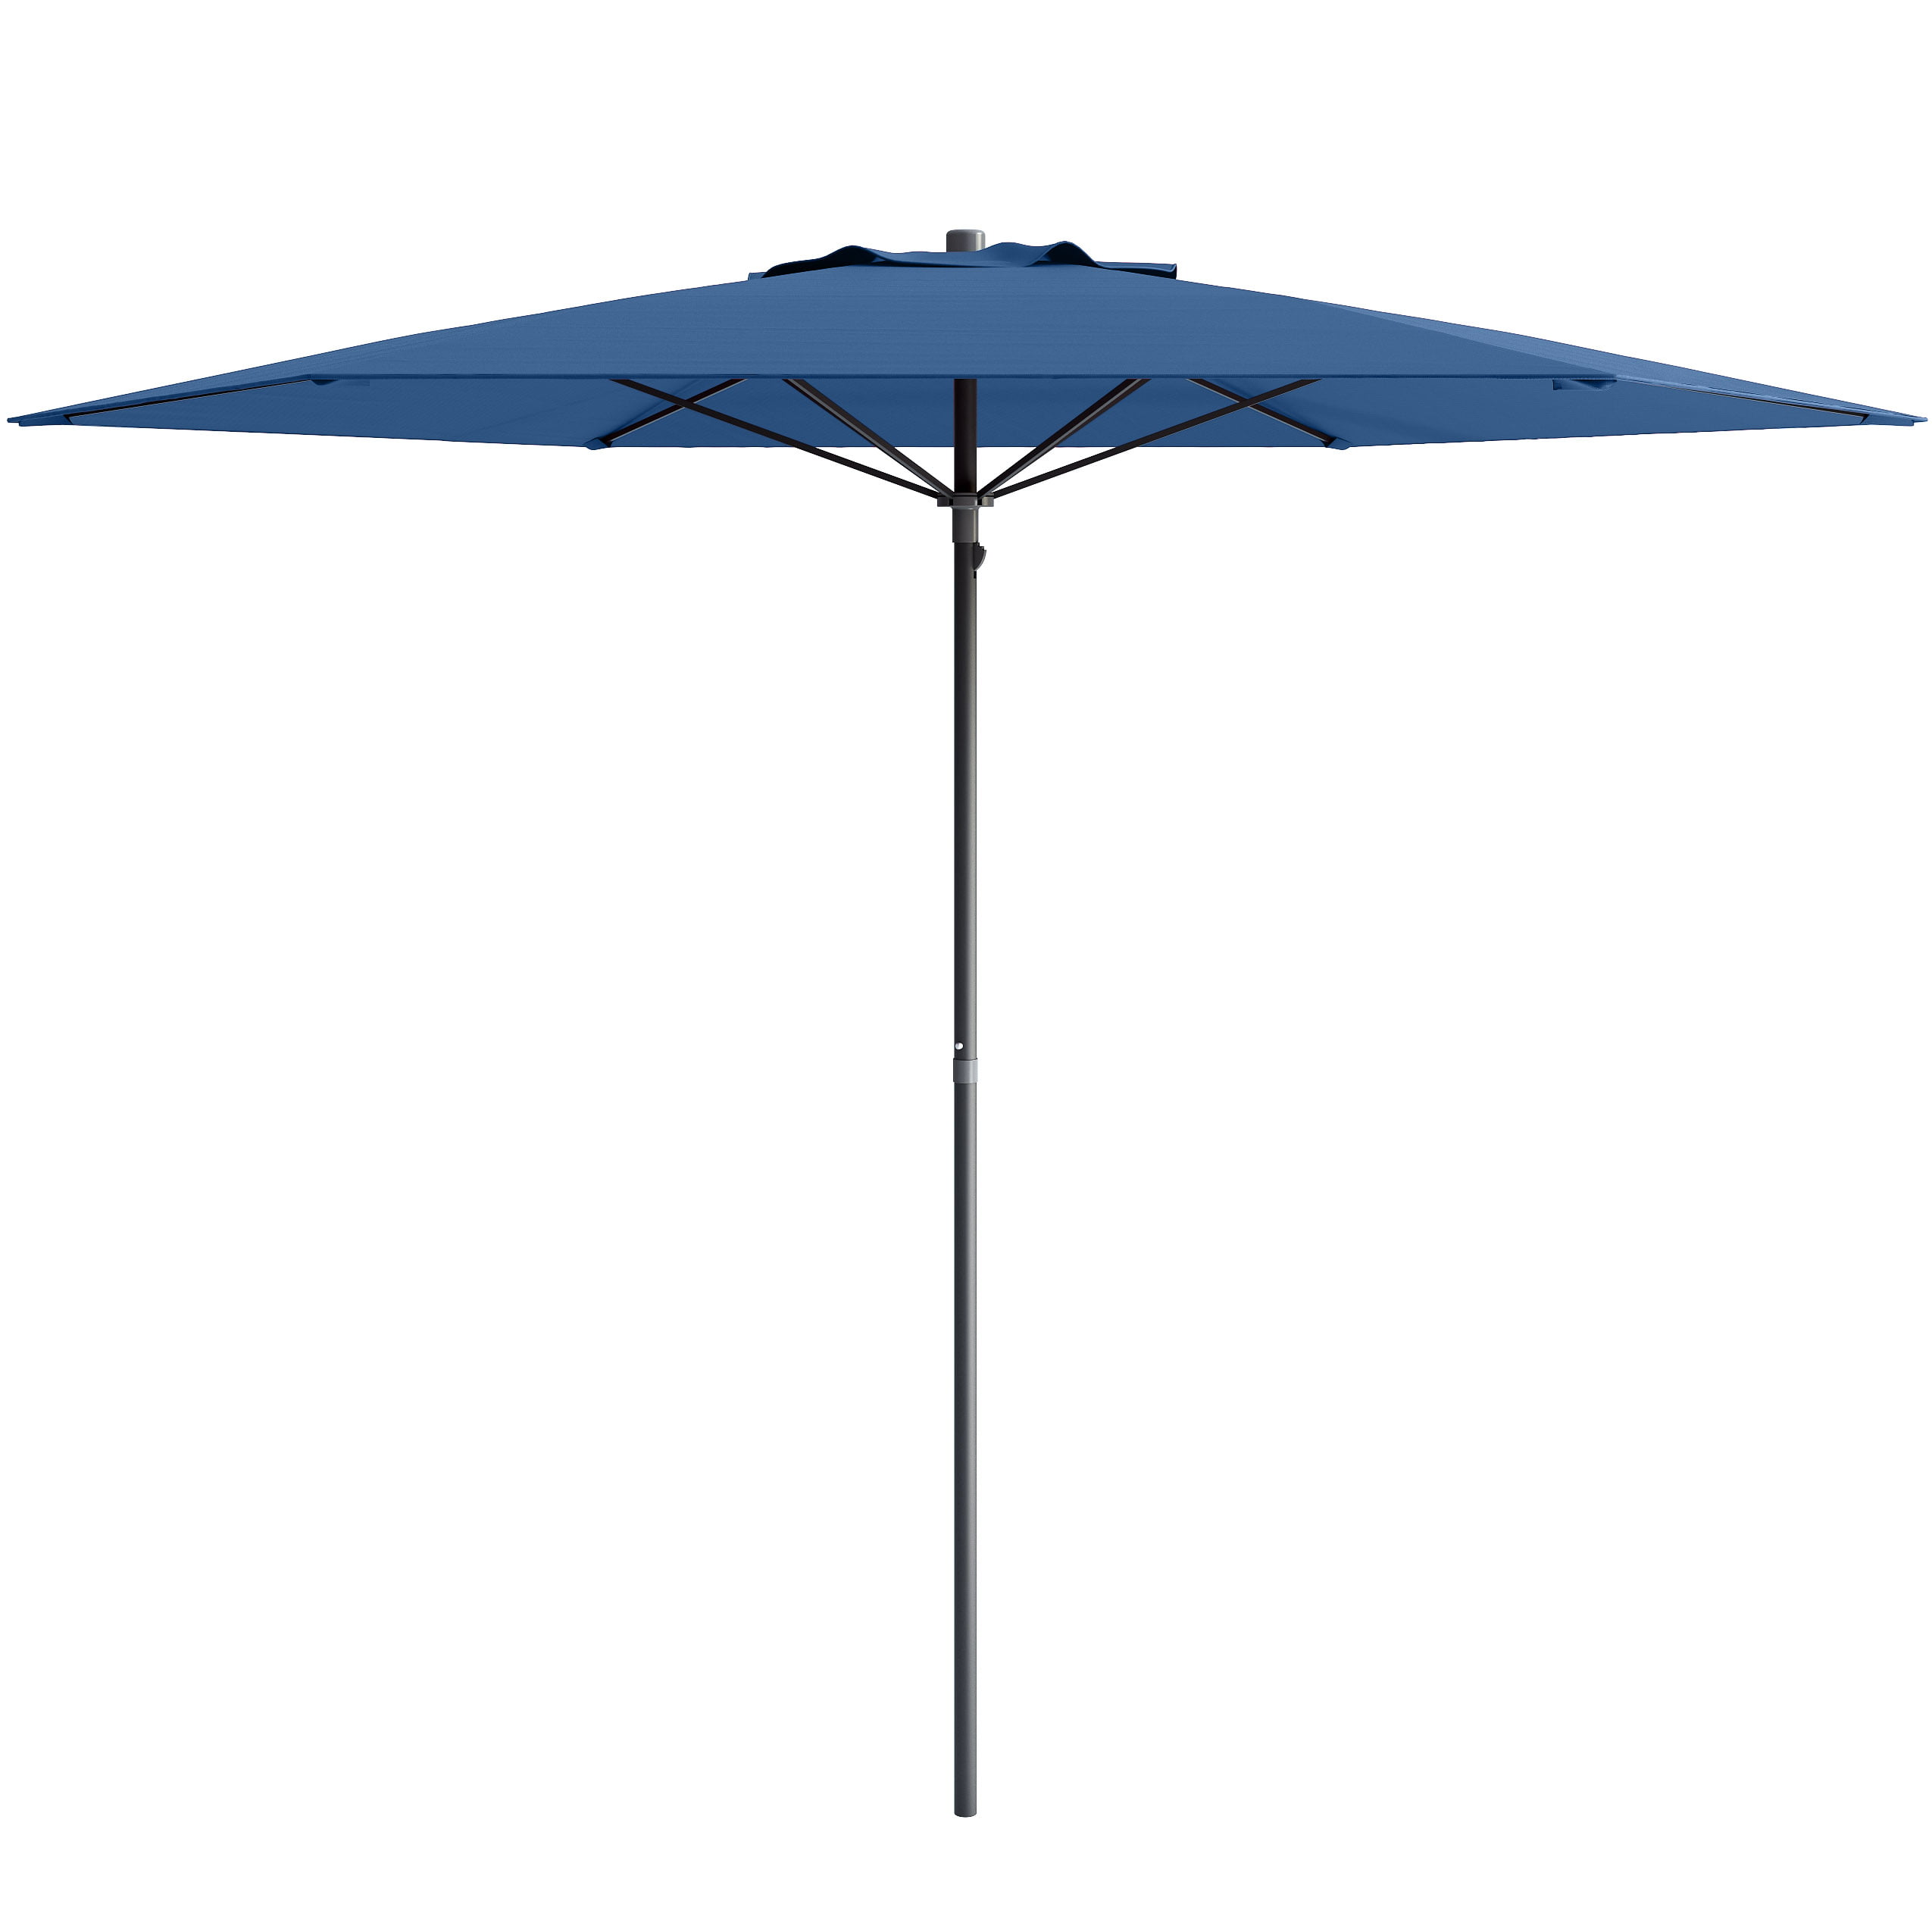 CorLiving UV and Wind Resistant Beach Patio Umbrella by CorLiving